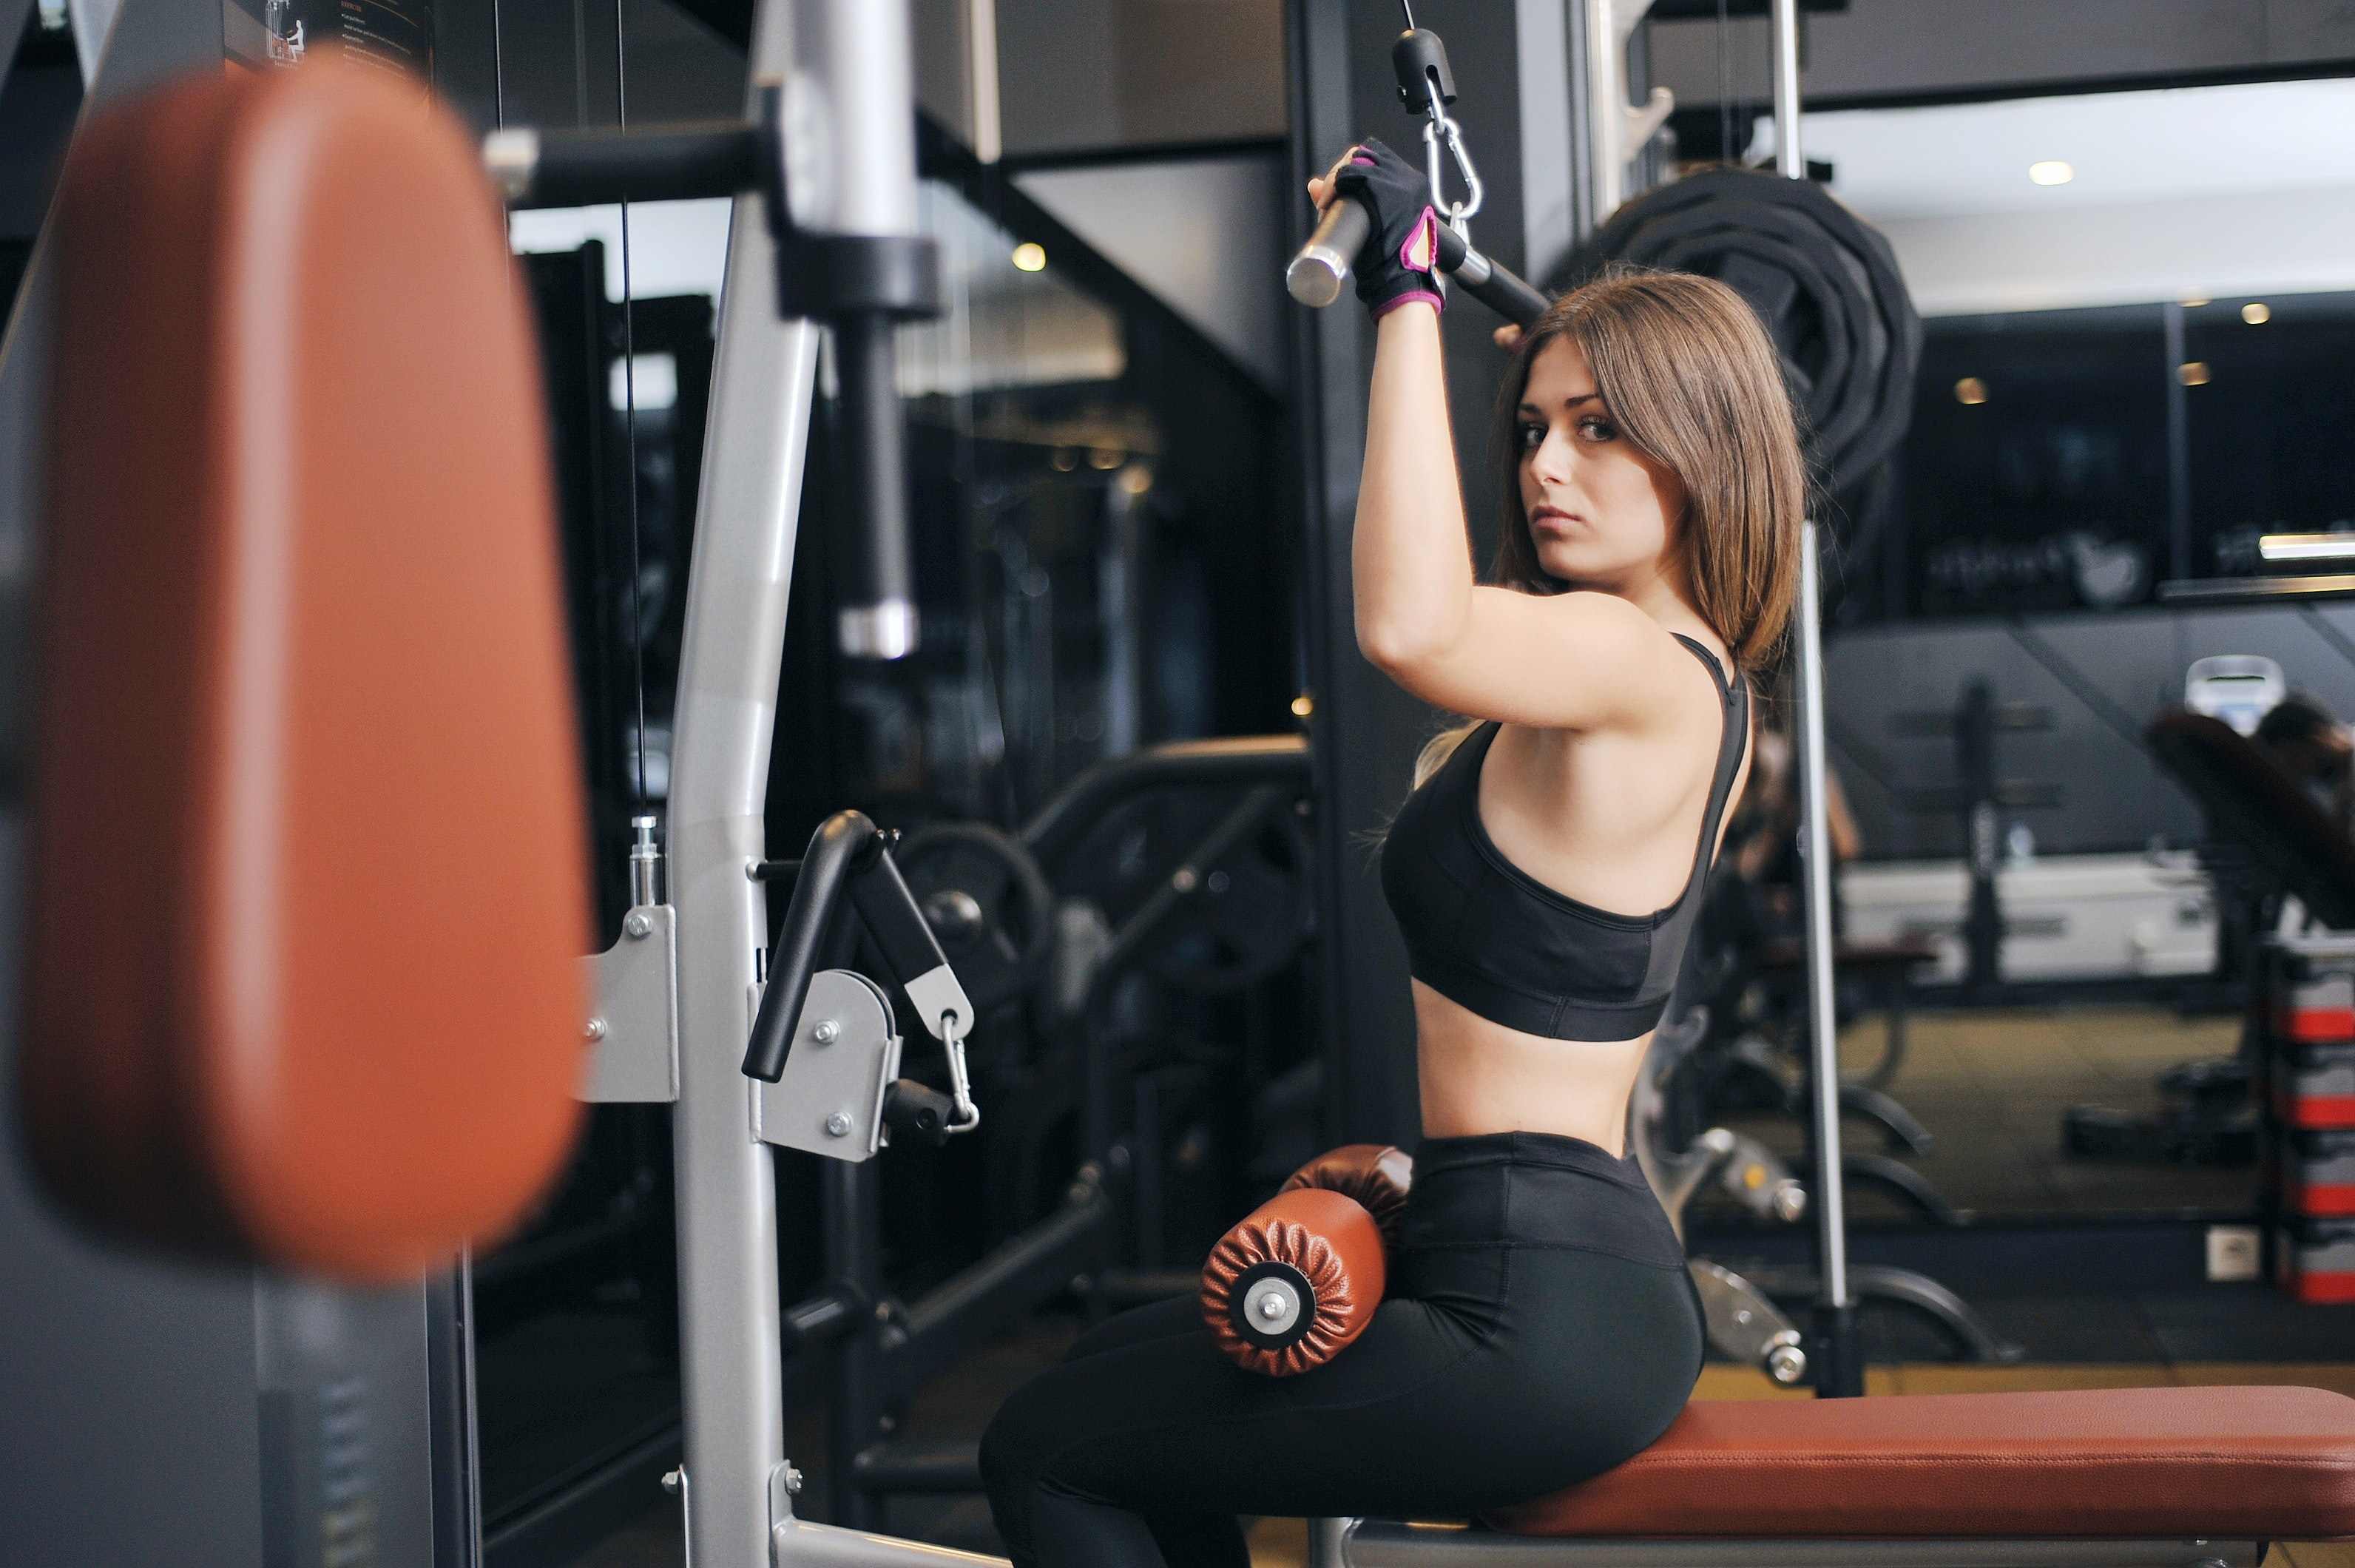 100 Kettlebell Swings a Day Weight Loss: Can Performing This Exercise Daily Help You Sculpt The Body Of Your Dreams?